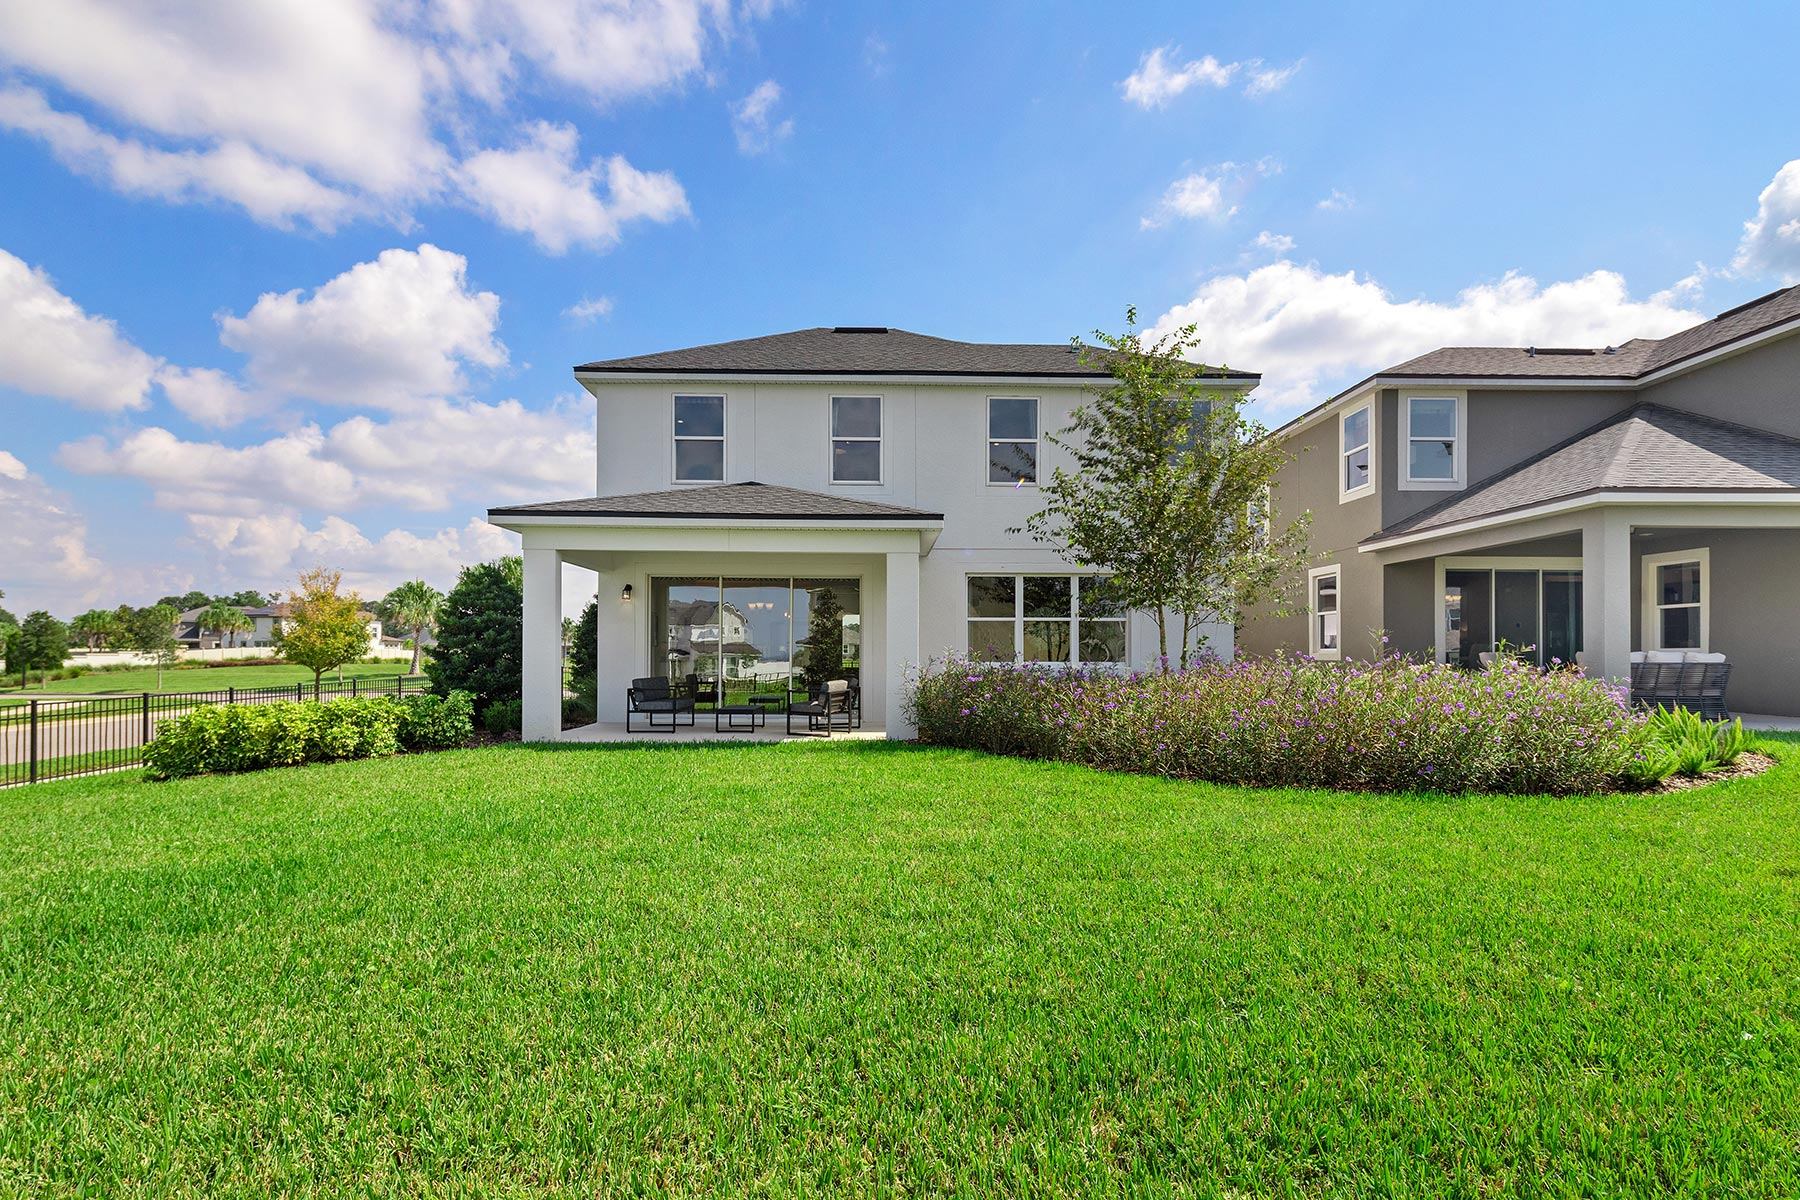 Campbell Plan Elevation Back Side at Tohoqua in Kissimmee Florida by Mattamy Homes